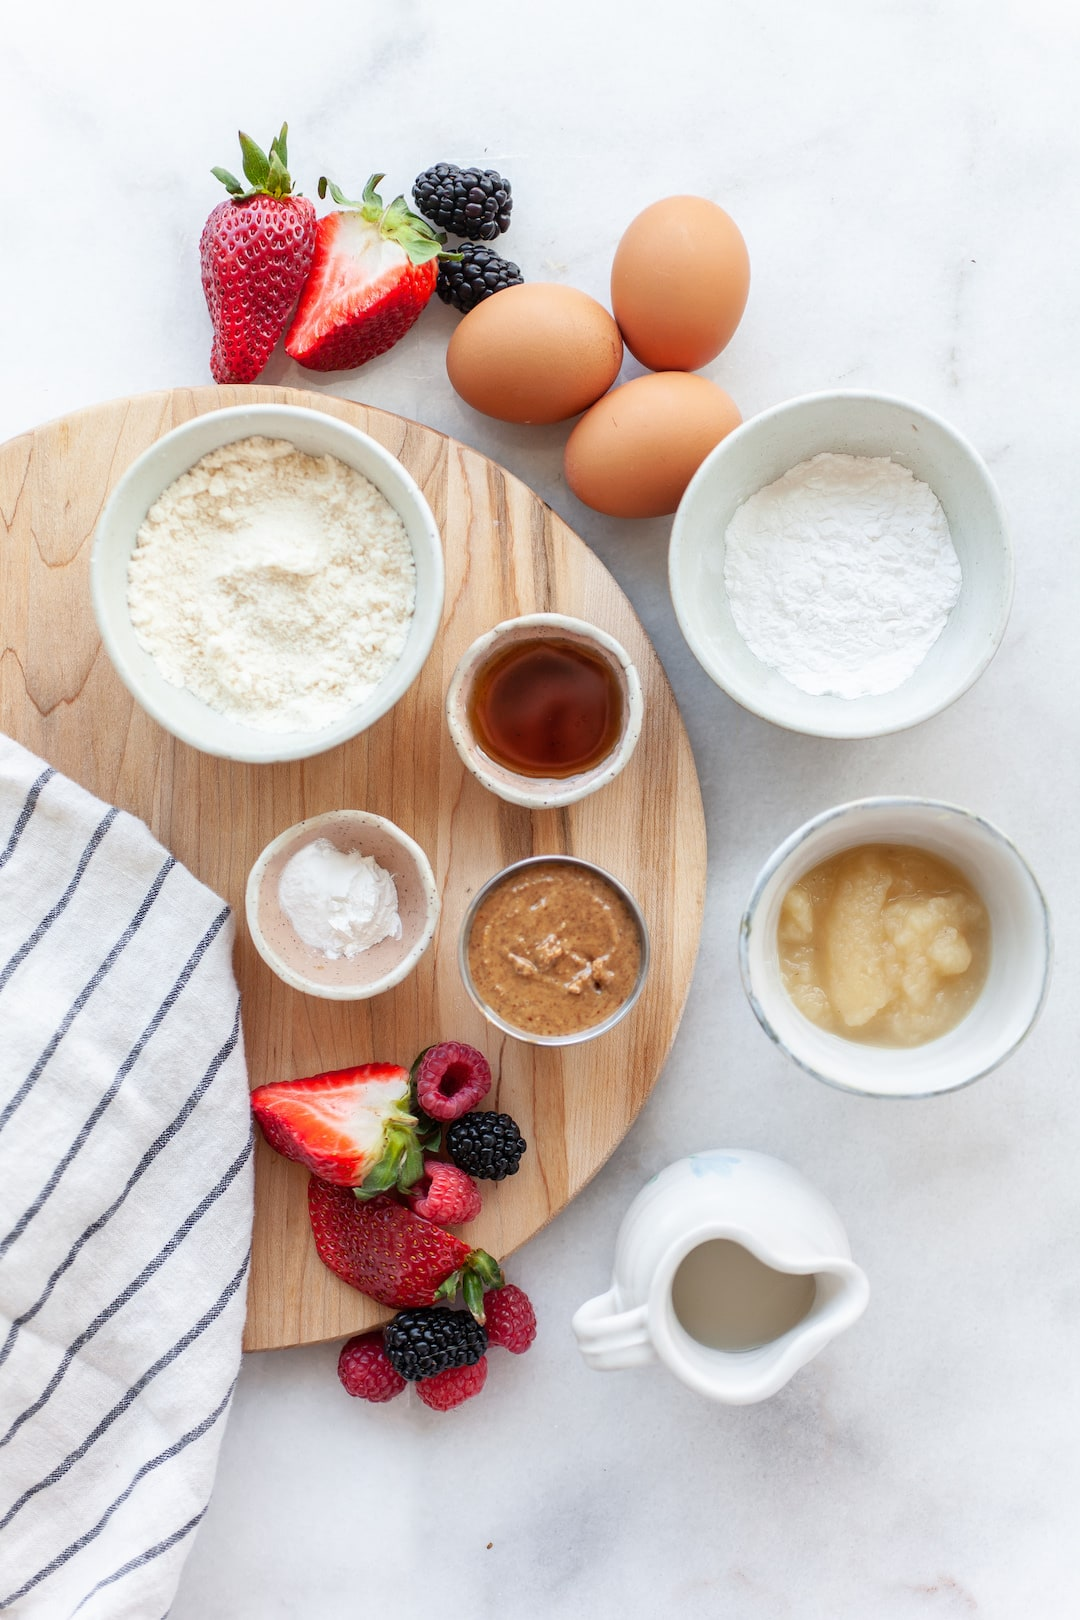 Large white marble board with bowls containing ingredients for Easy Coconut Flour Waffles